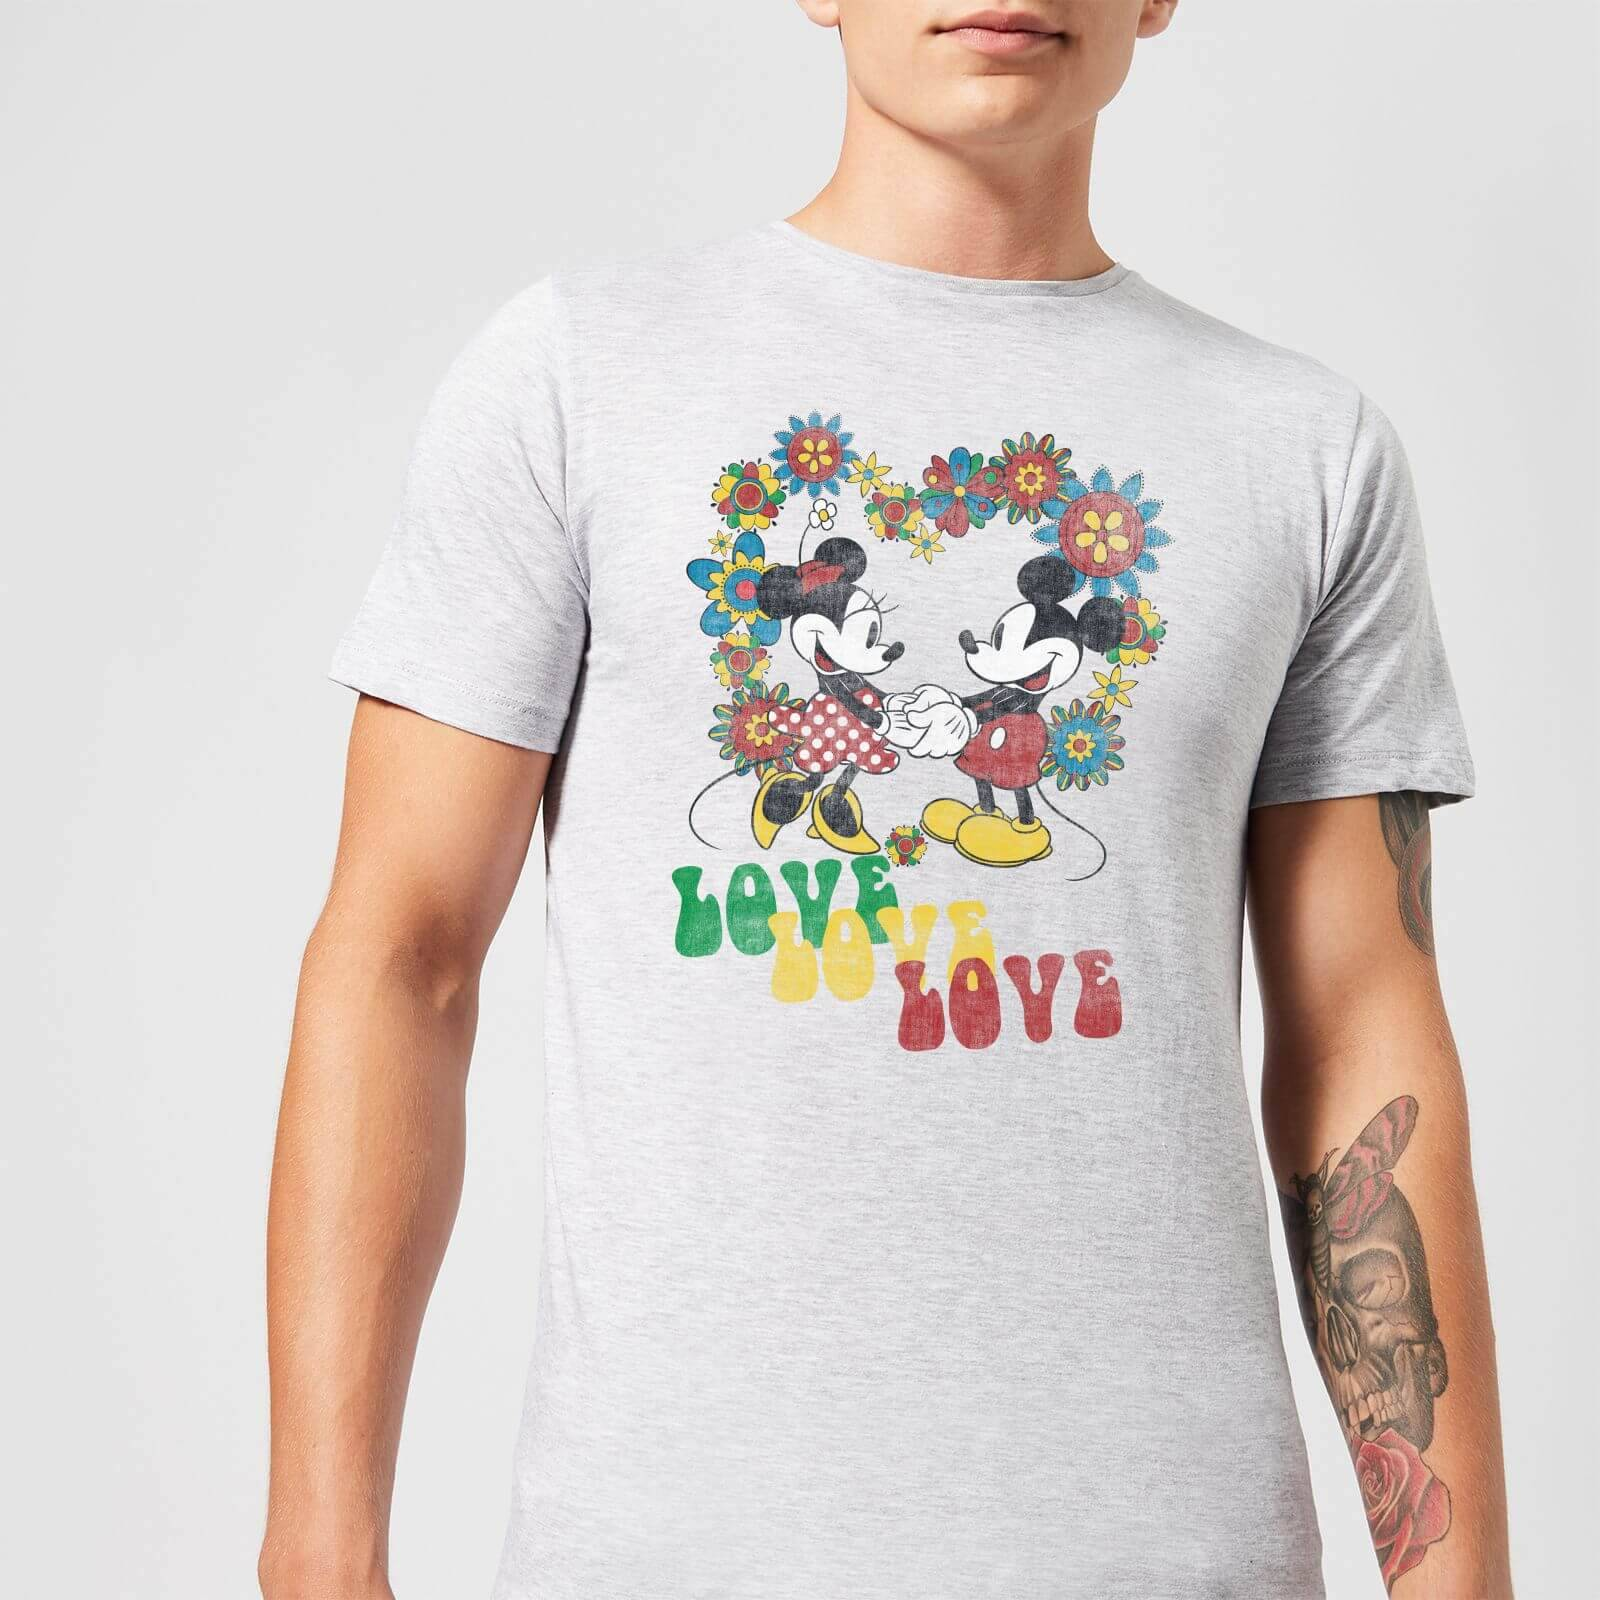 Disney Mickey Mouse Hippie Love T-Shirt - Grey - 4XL - Grey